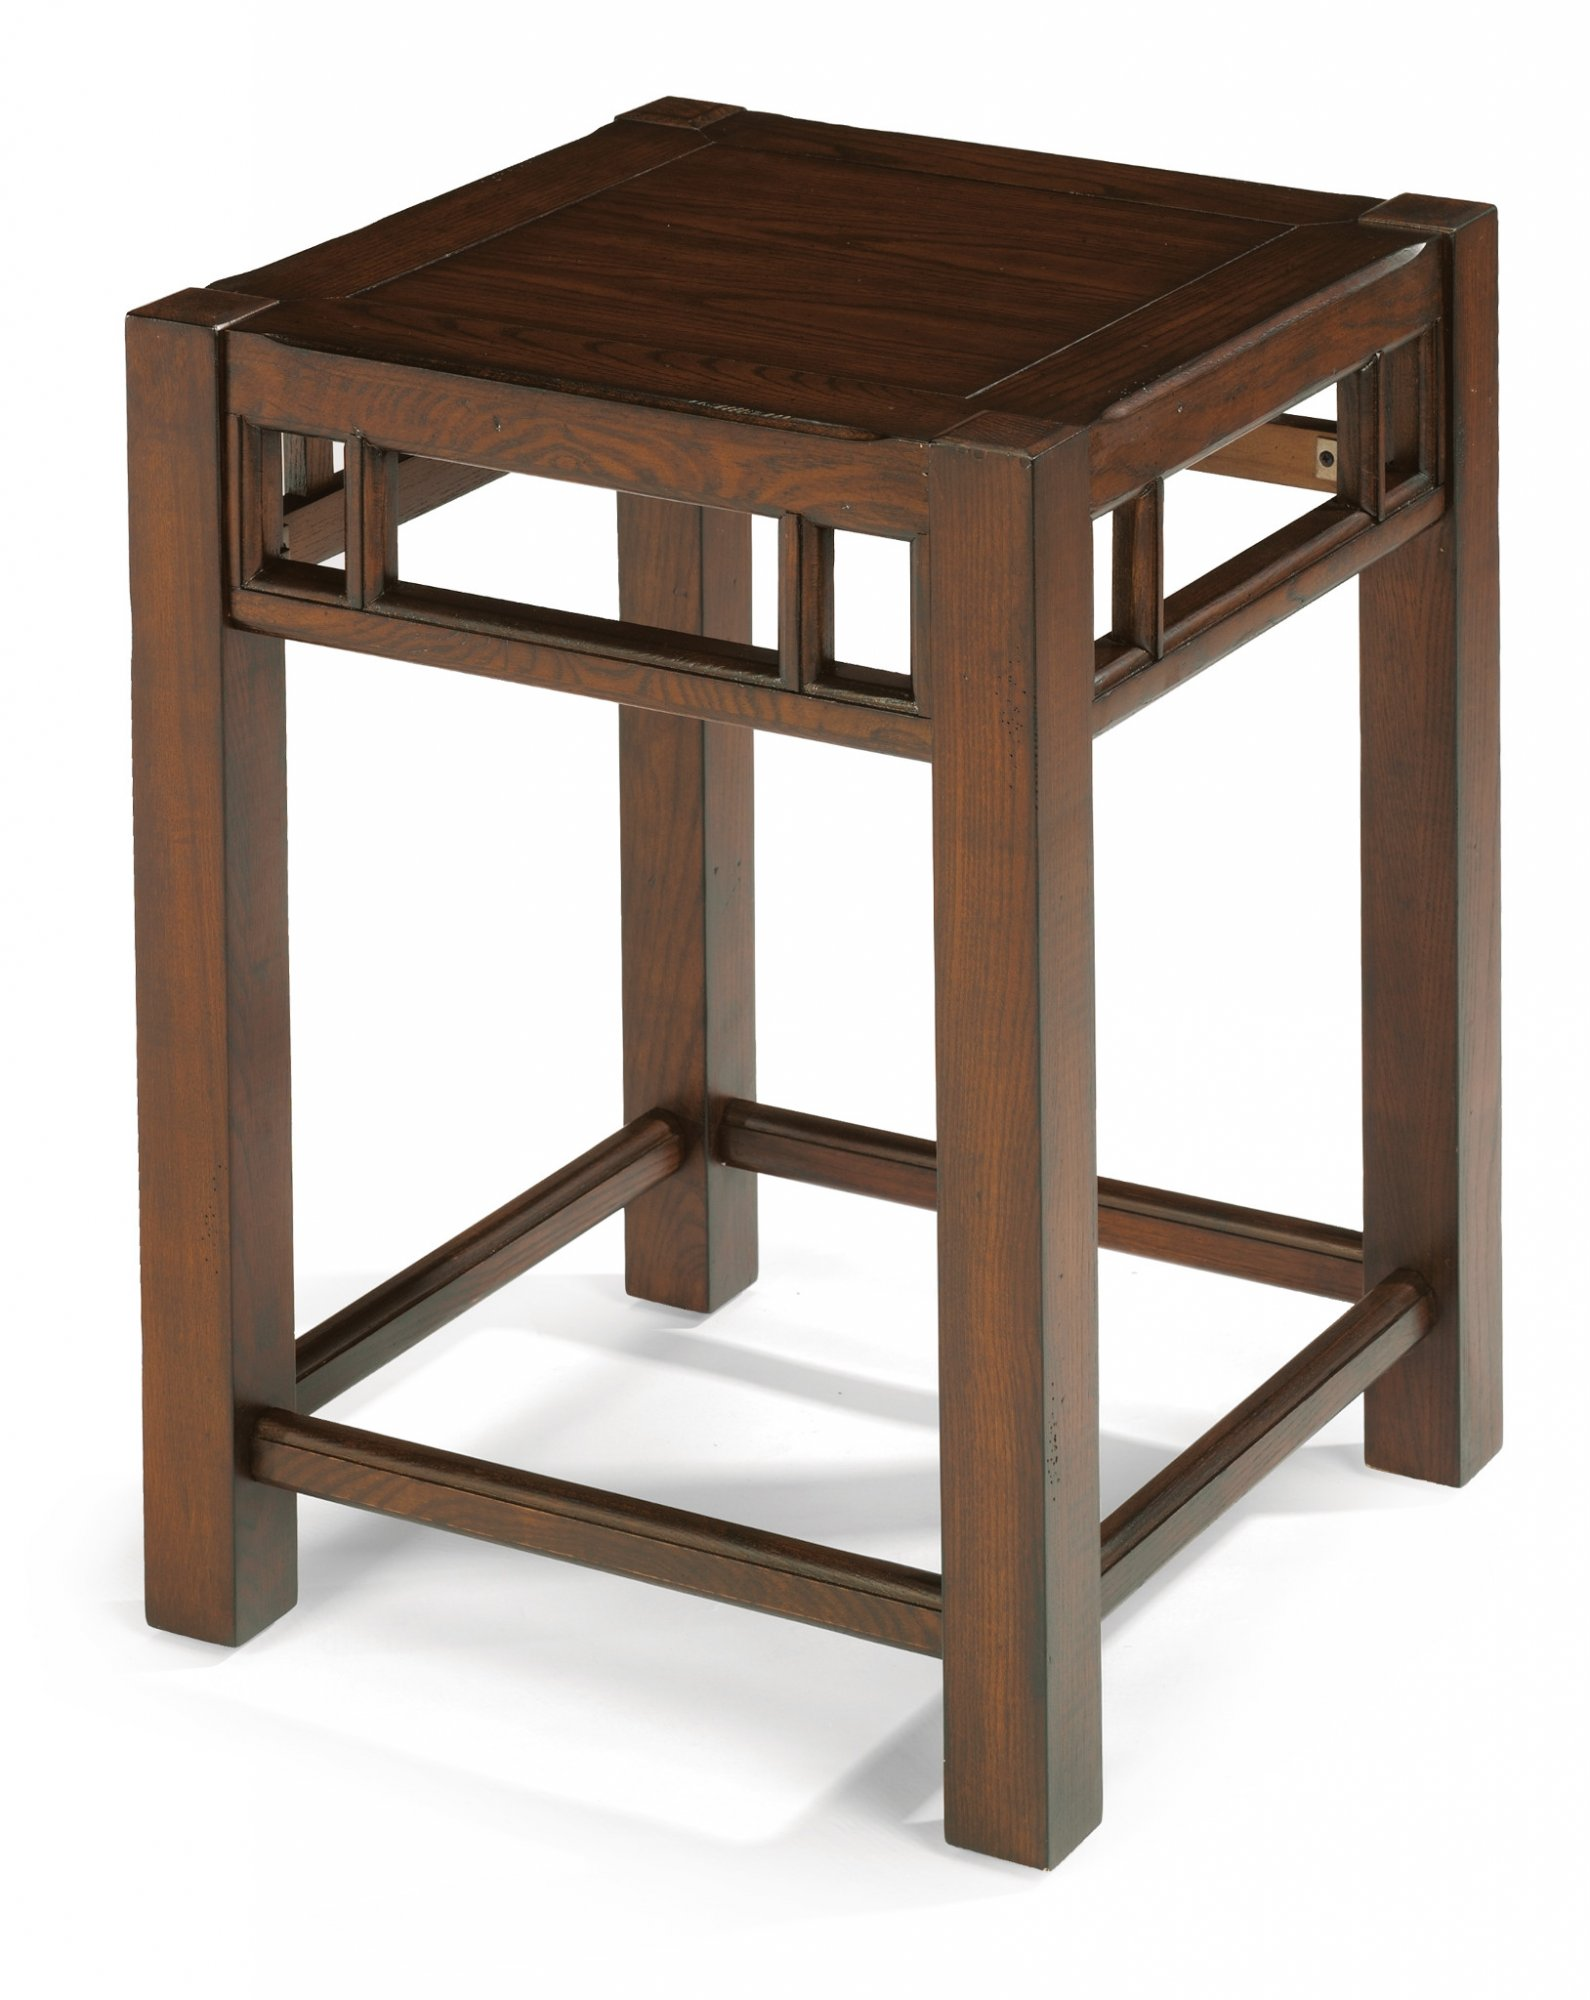 Sensational Flexsteel 6625 07 Sonoma Chairside Table Highway Gmtry Best Dining Table And Chair Ideas Images Gmtryco